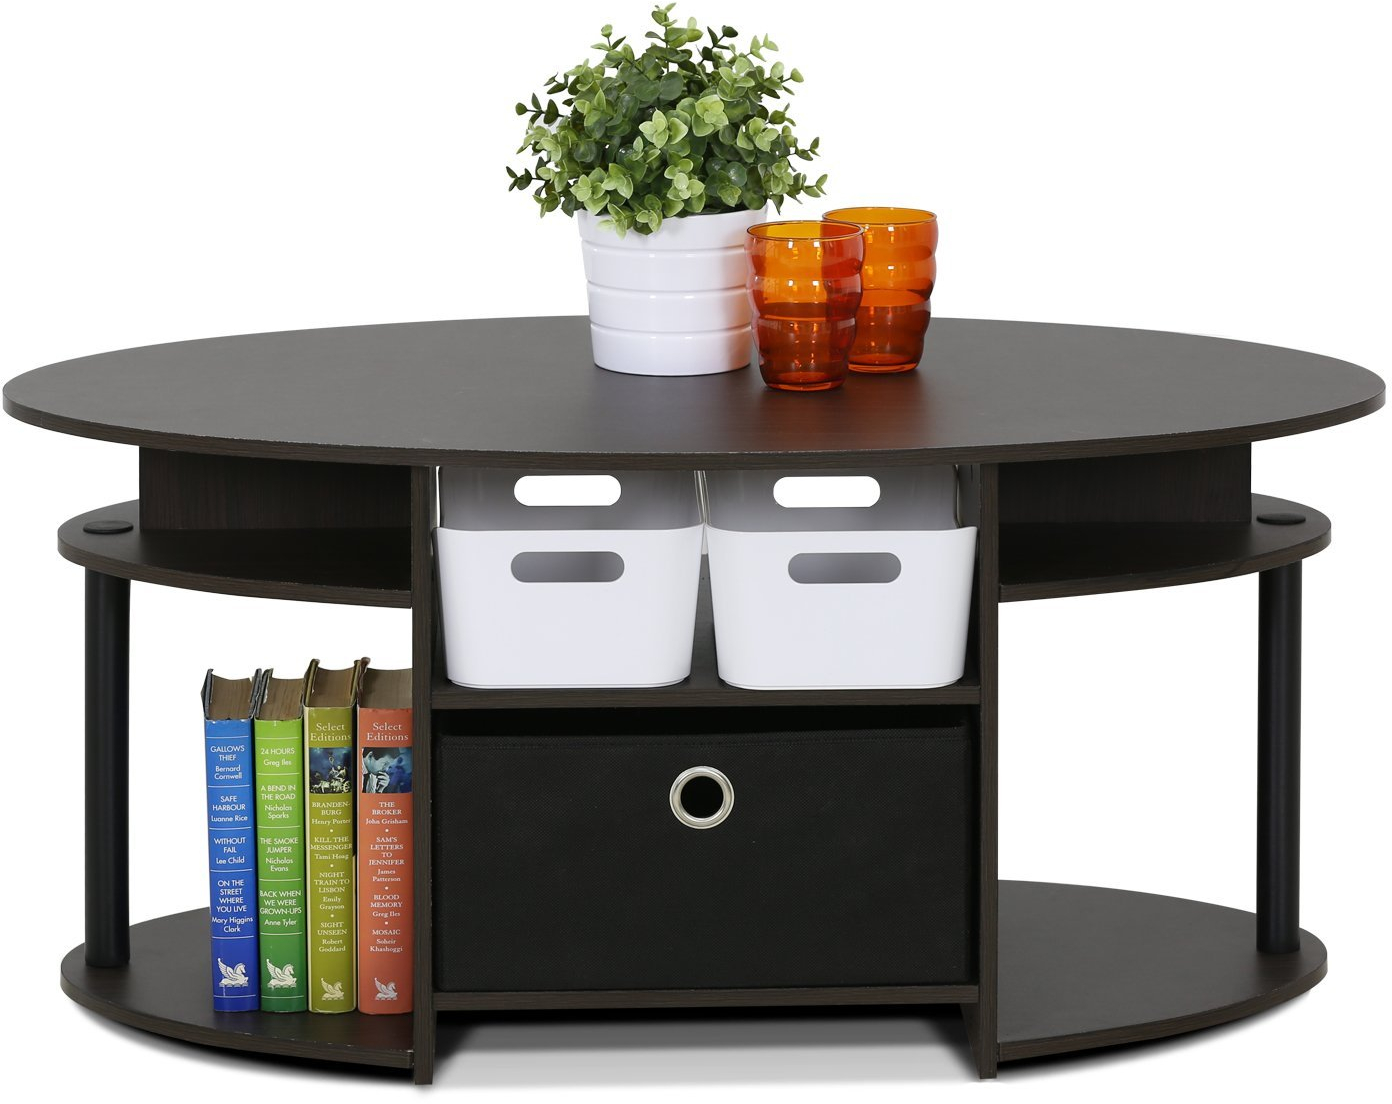 Oval Coffee Table With Shelf.Details About Oval Coffee Table Stand Living Room Modern Wood Storage Shelf Display Furniture